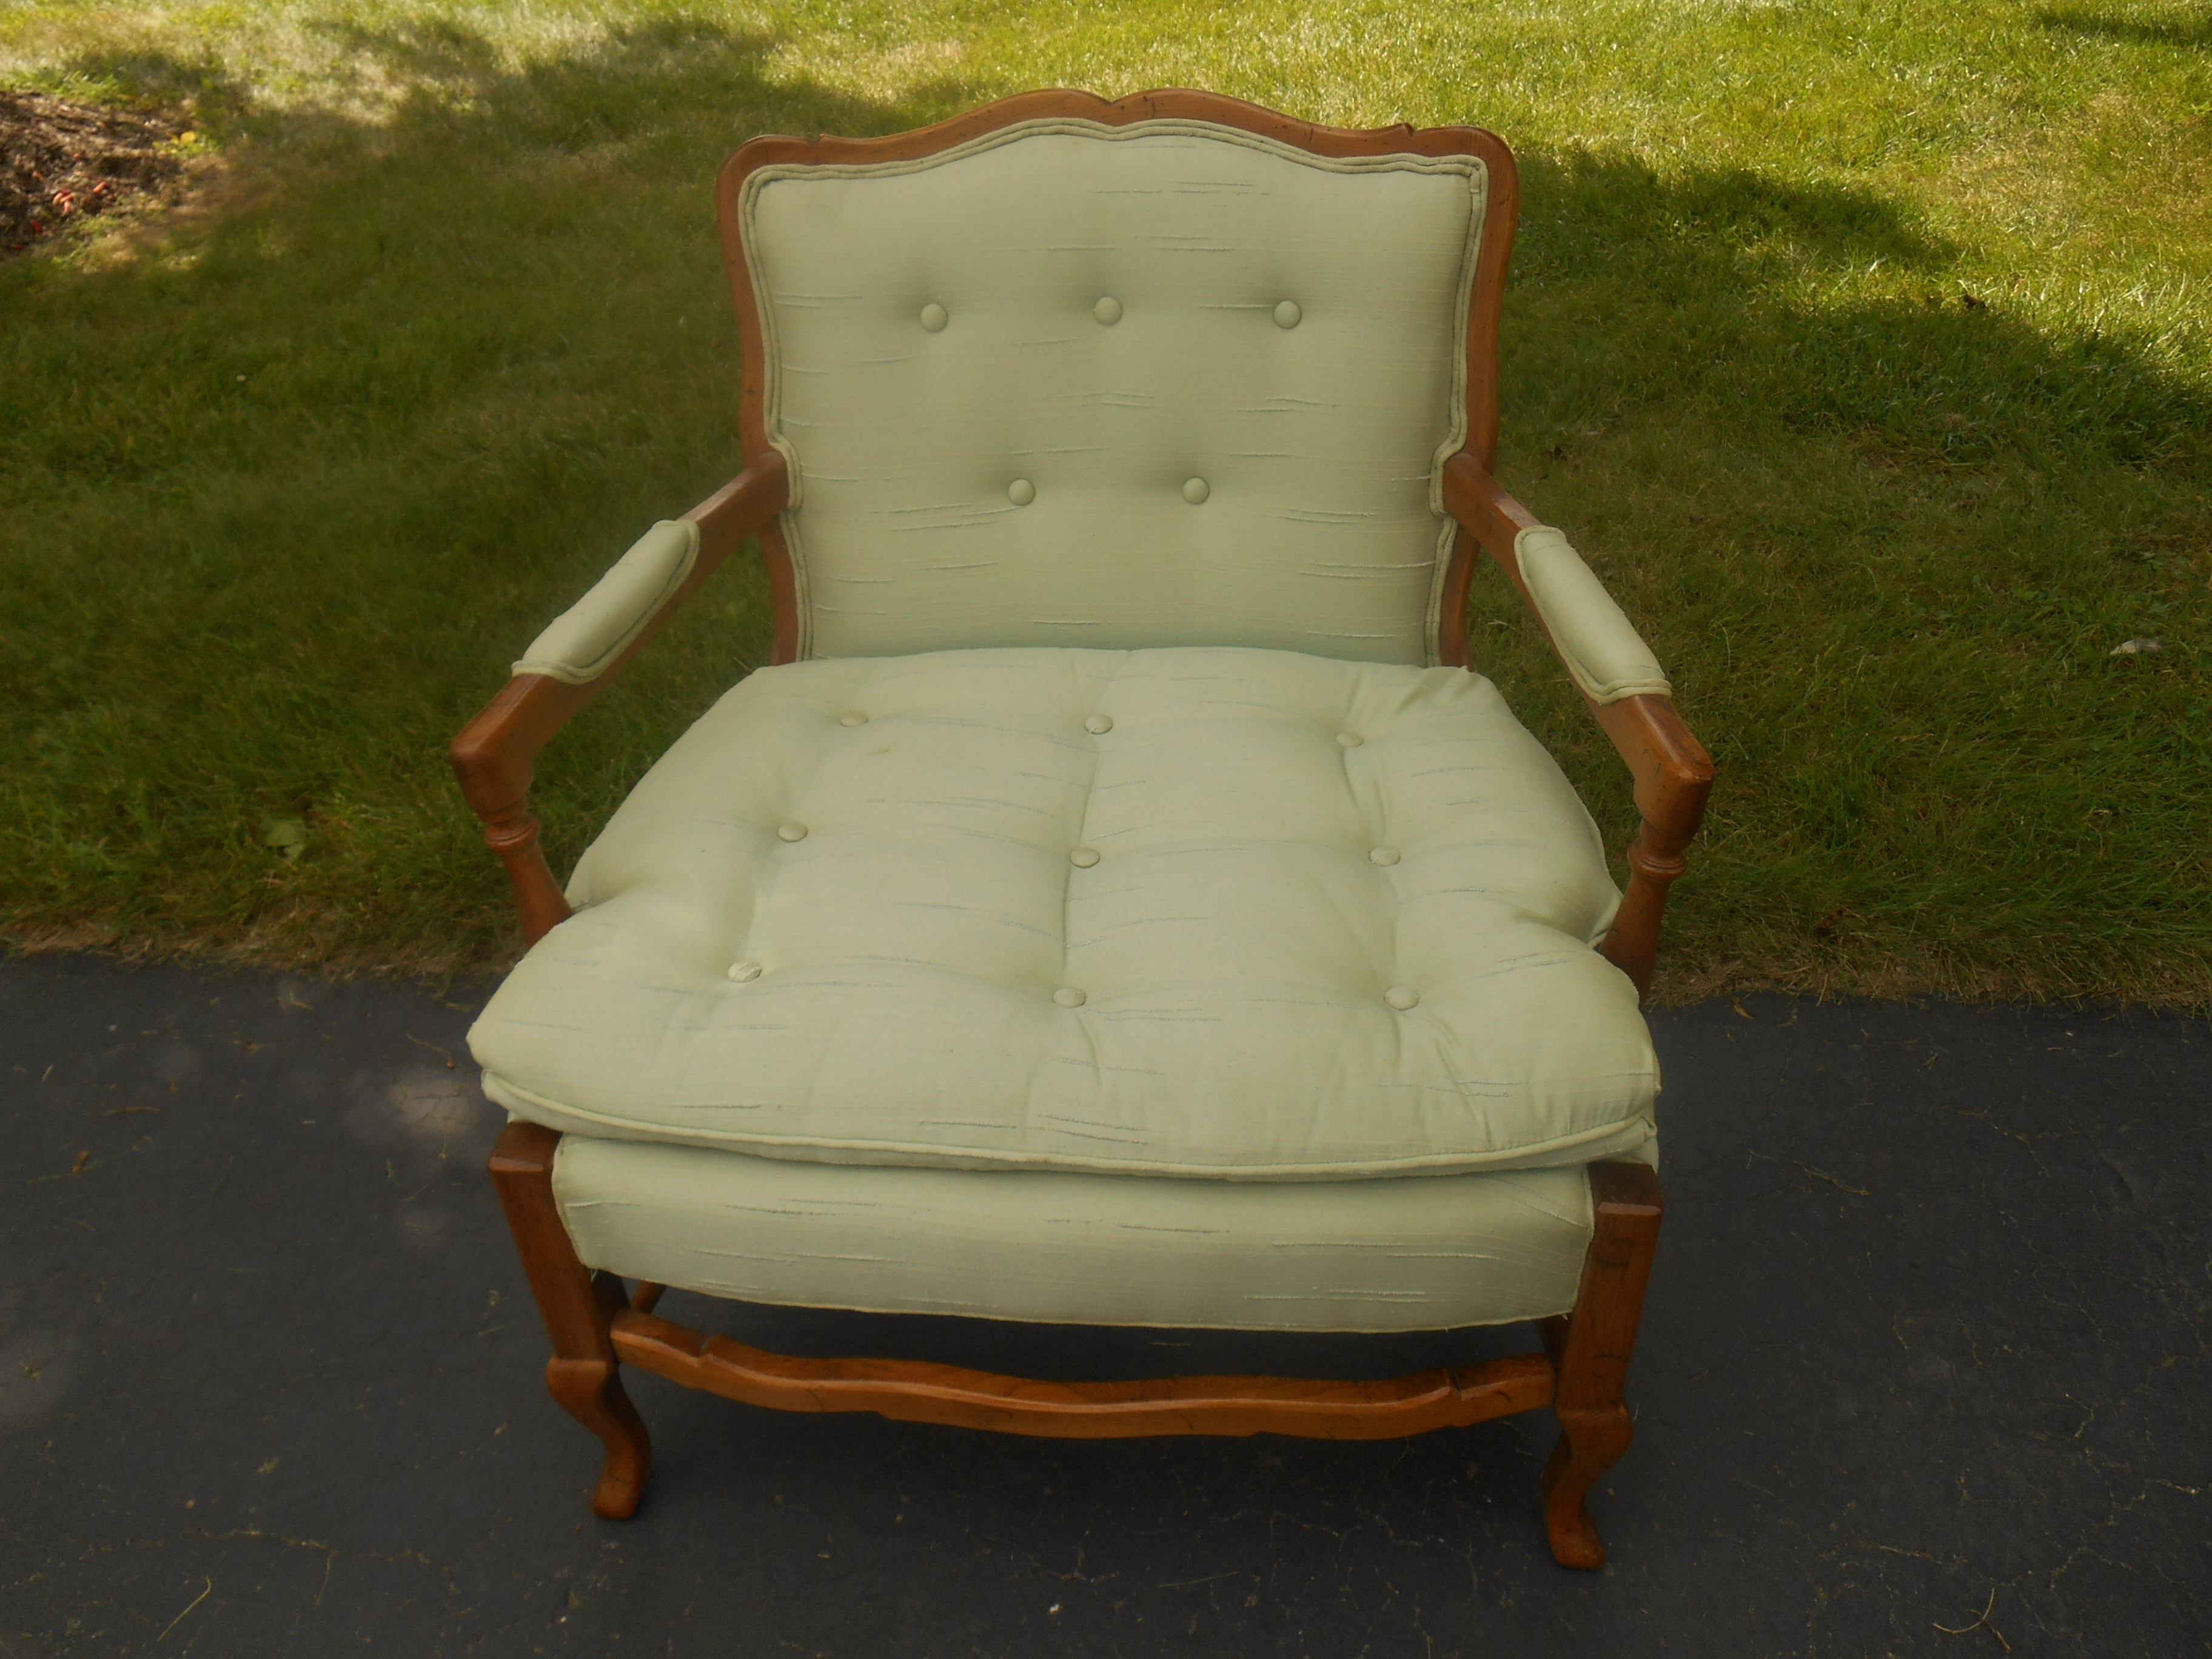 Exceptional North Hickory Furniture Co. Lounge Chair   Image 3 Of 5